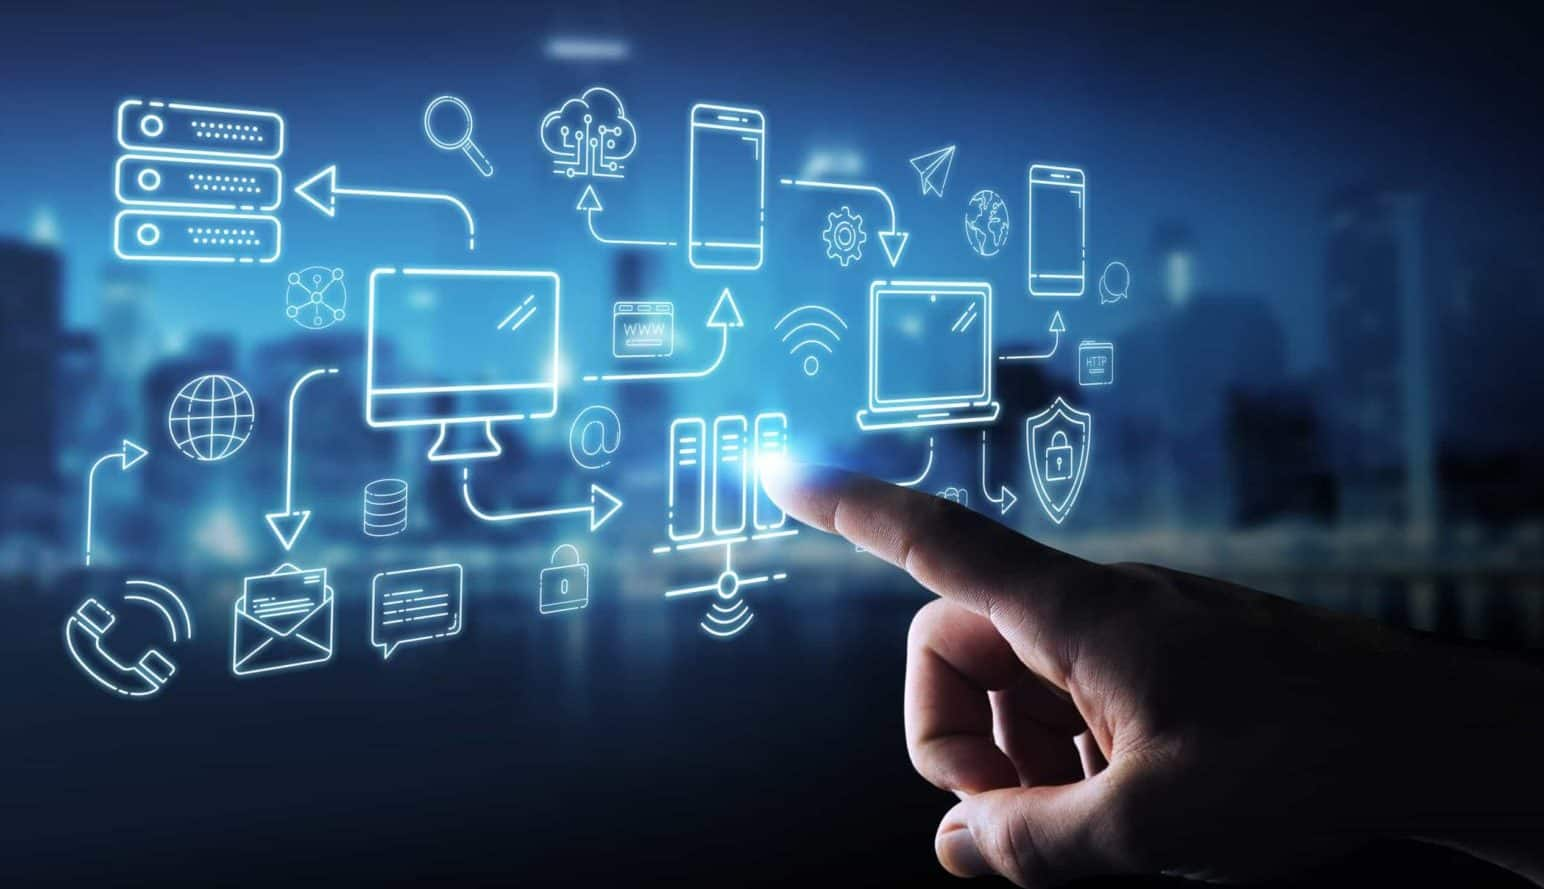 iot connectivity management solutions